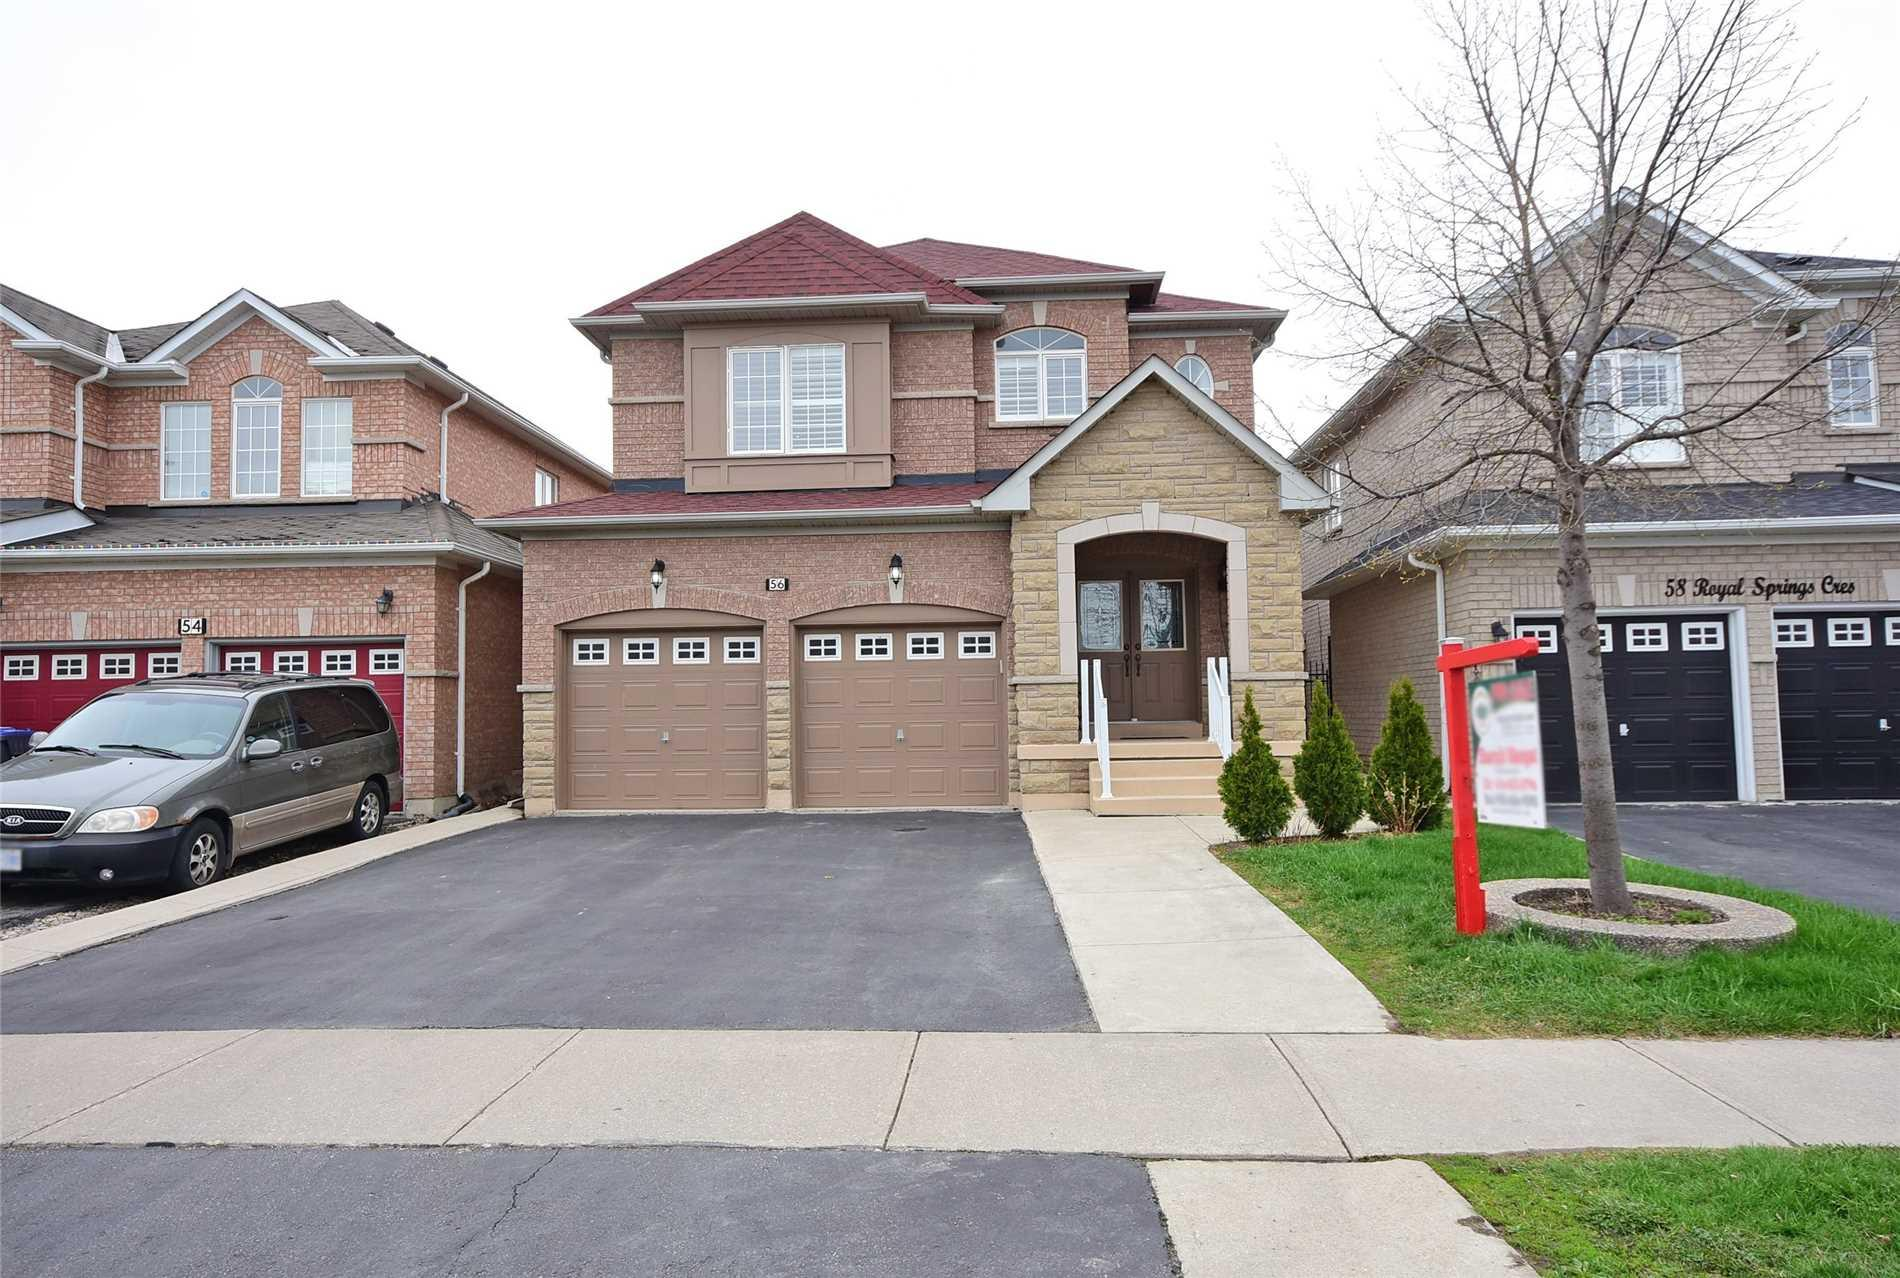 Marvelous 56 Royal Springs Cres Brampton W4444261 Zoocasa Home Interior And Landscaping Palasignezvosmurscom